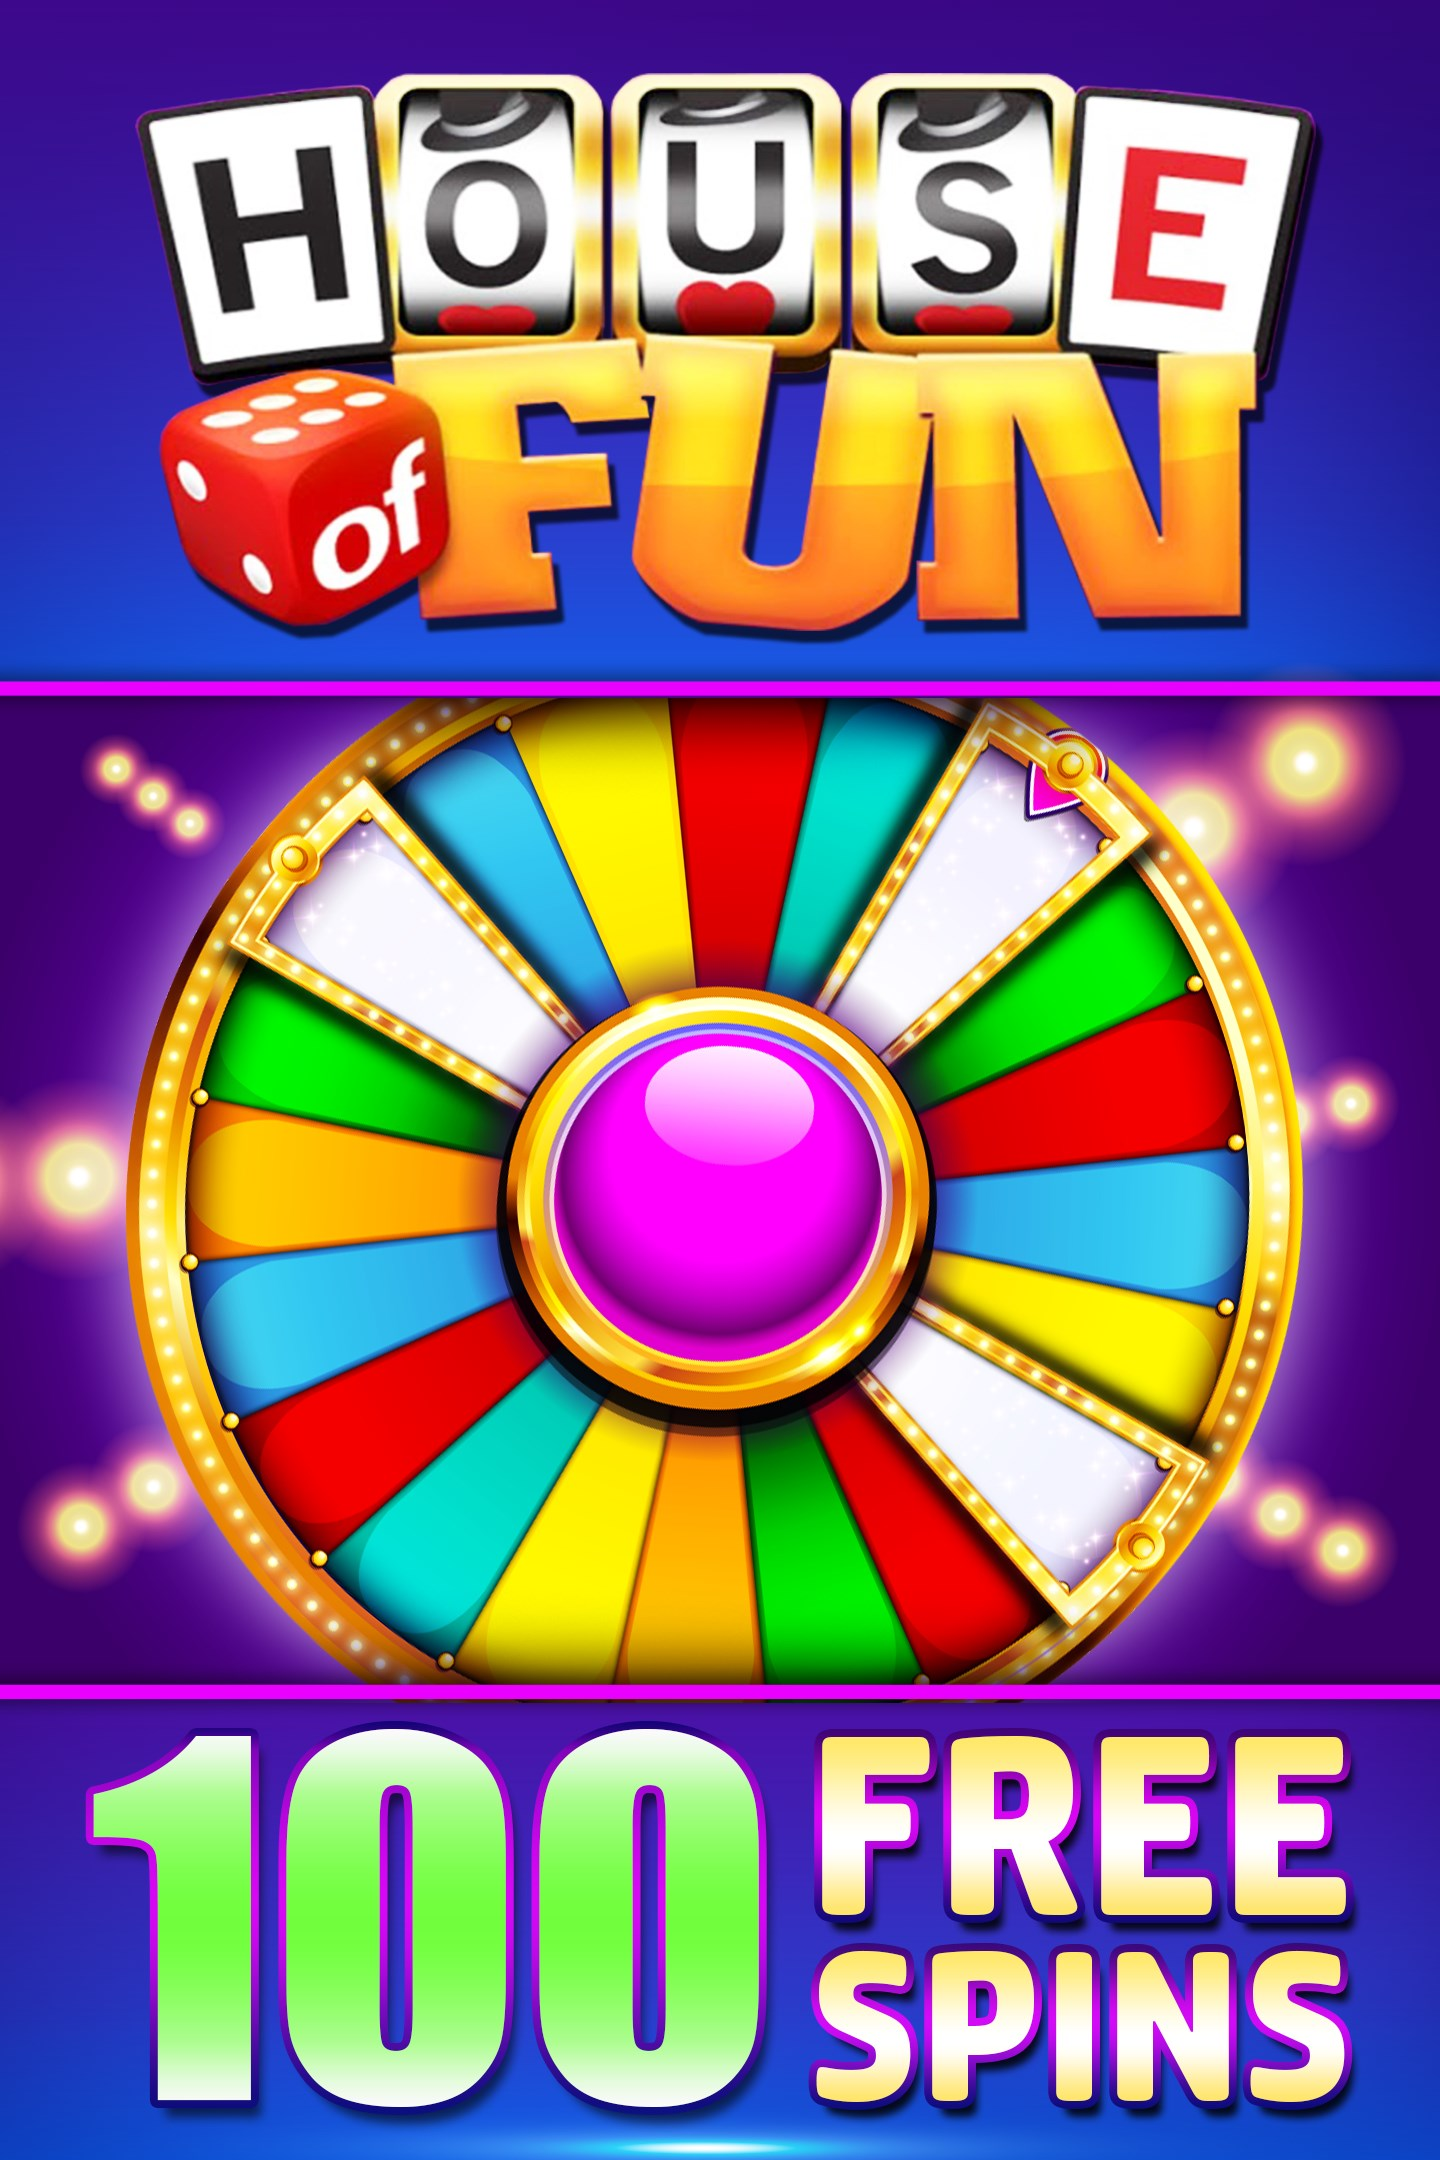 Free Coins House Of Fun Slot Freebies : coins, house, freebies, House, Coins, Spins, HomeLooker